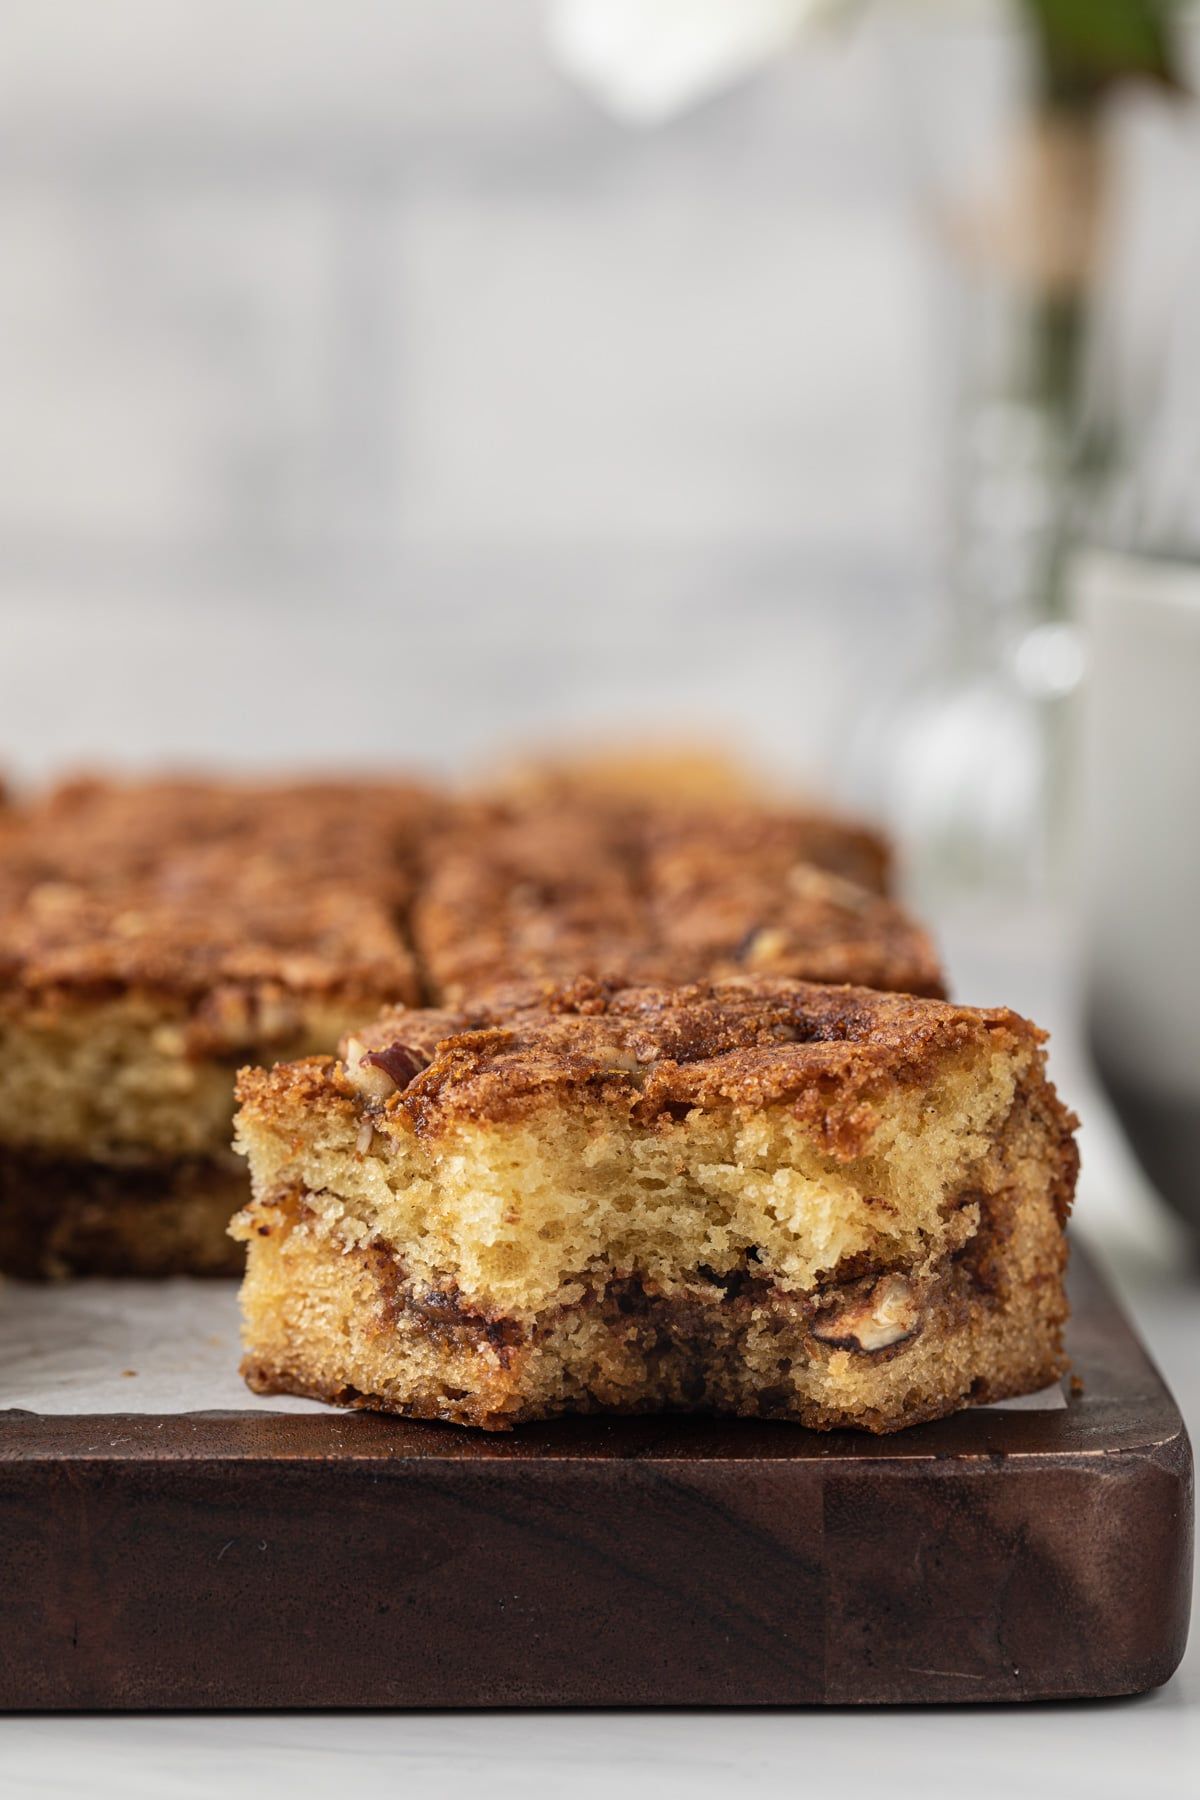 slice of cinnamon coffee cake with bite taken out